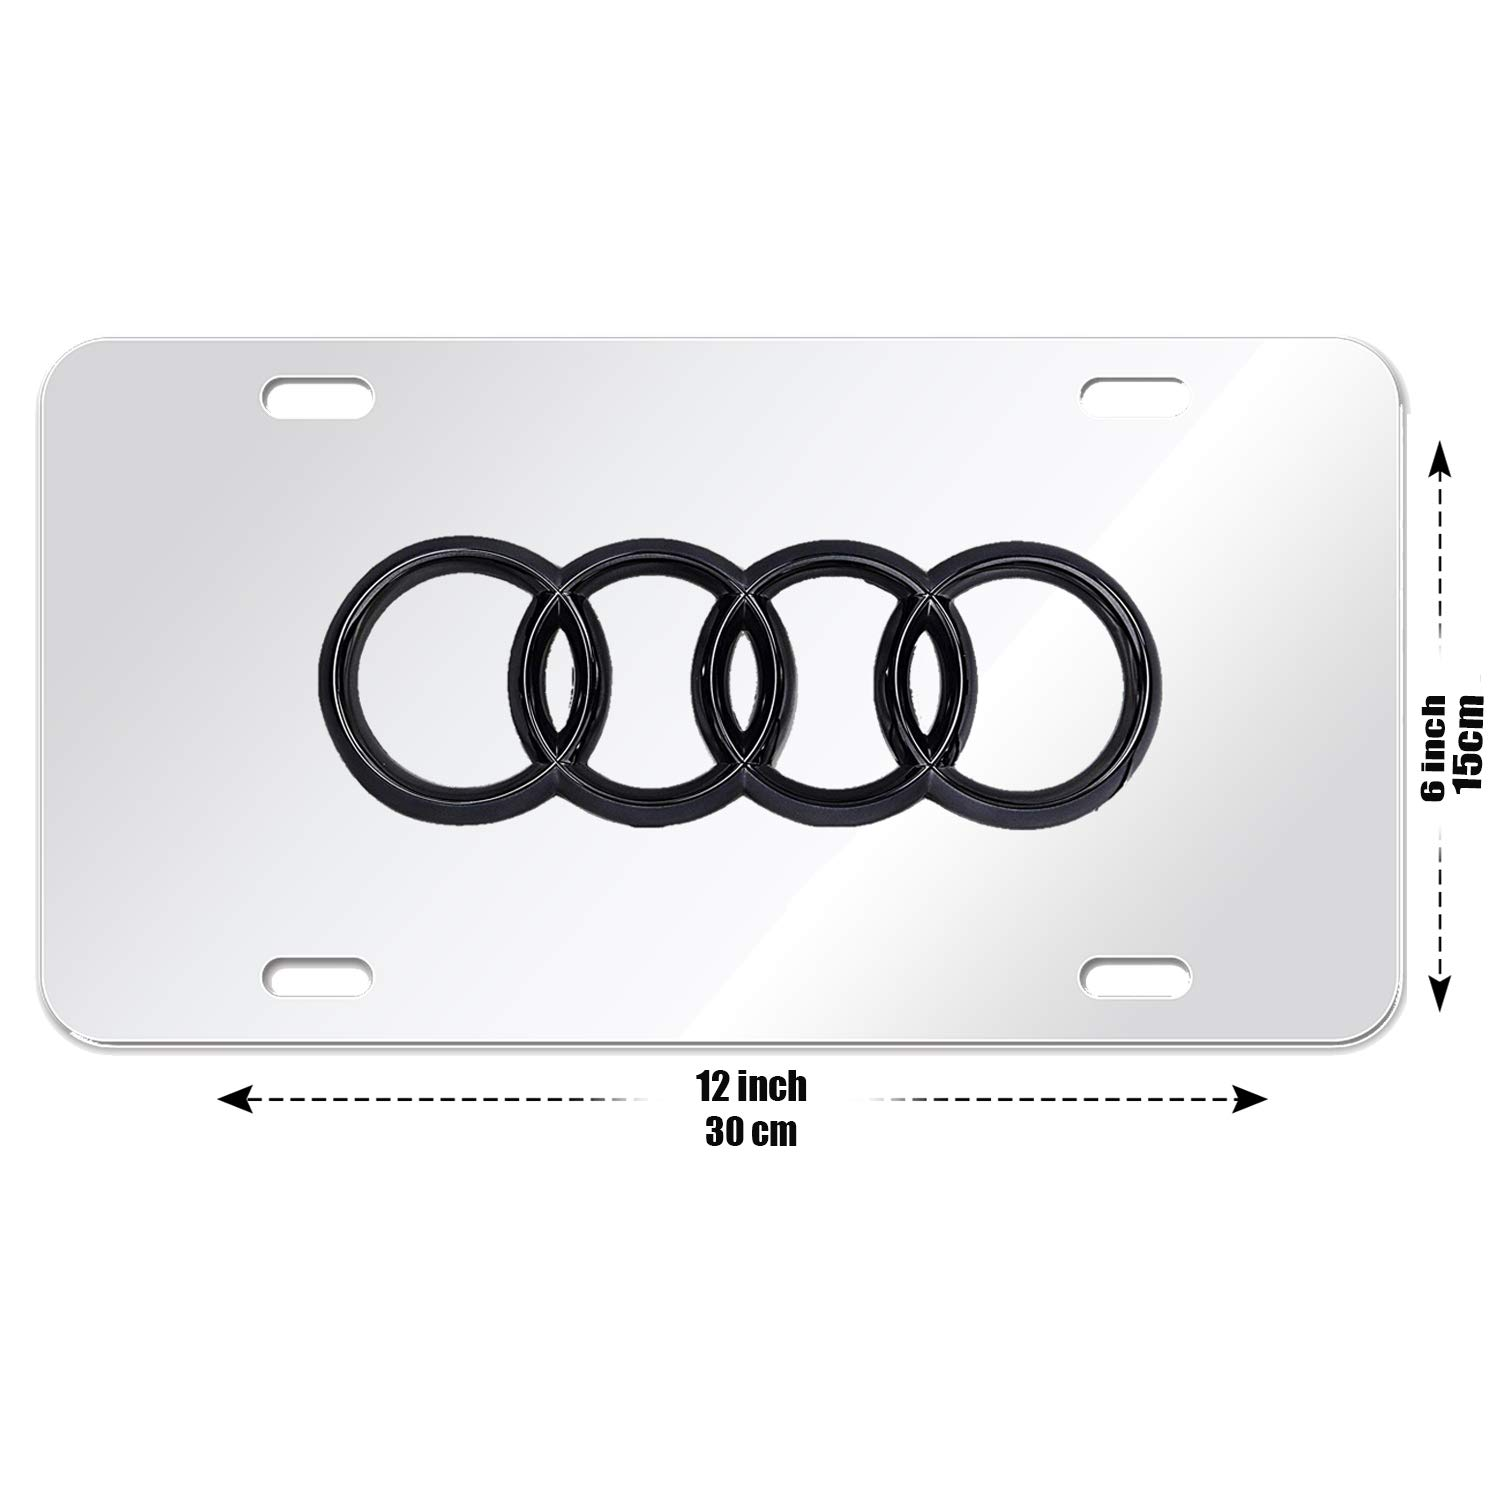 Mercedes Benz Logo 3-D Silver Mirror Stainless Steel Front License Plate,with Screw Caps Cover Set Suit for Mercedes Benz.